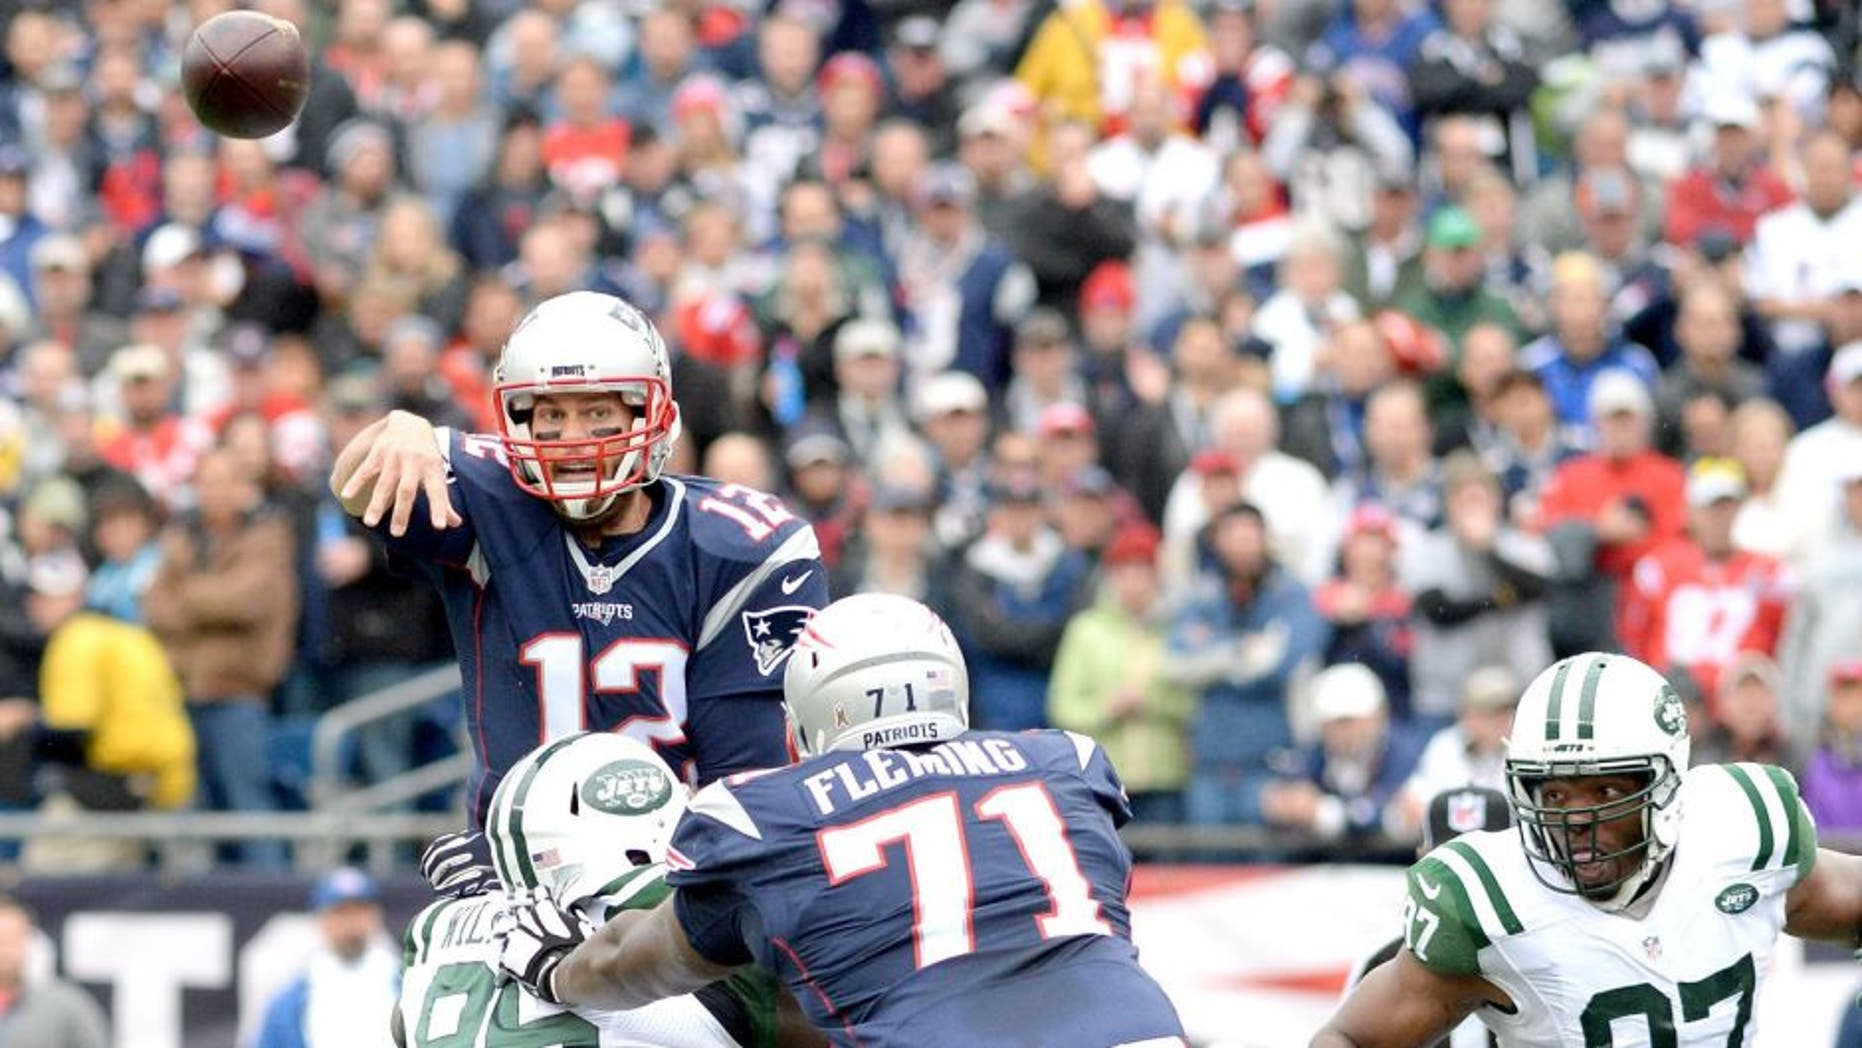 FOXBORO, MA - OCTOBER 25: Tom Brady #12 of the New England Patriots throws during the first quarter against the New York Jets at Gillette Stadium on October 25, 2015 in Foxboro, Massachusetts. (Photo by Darren McCollester/Getty Images)